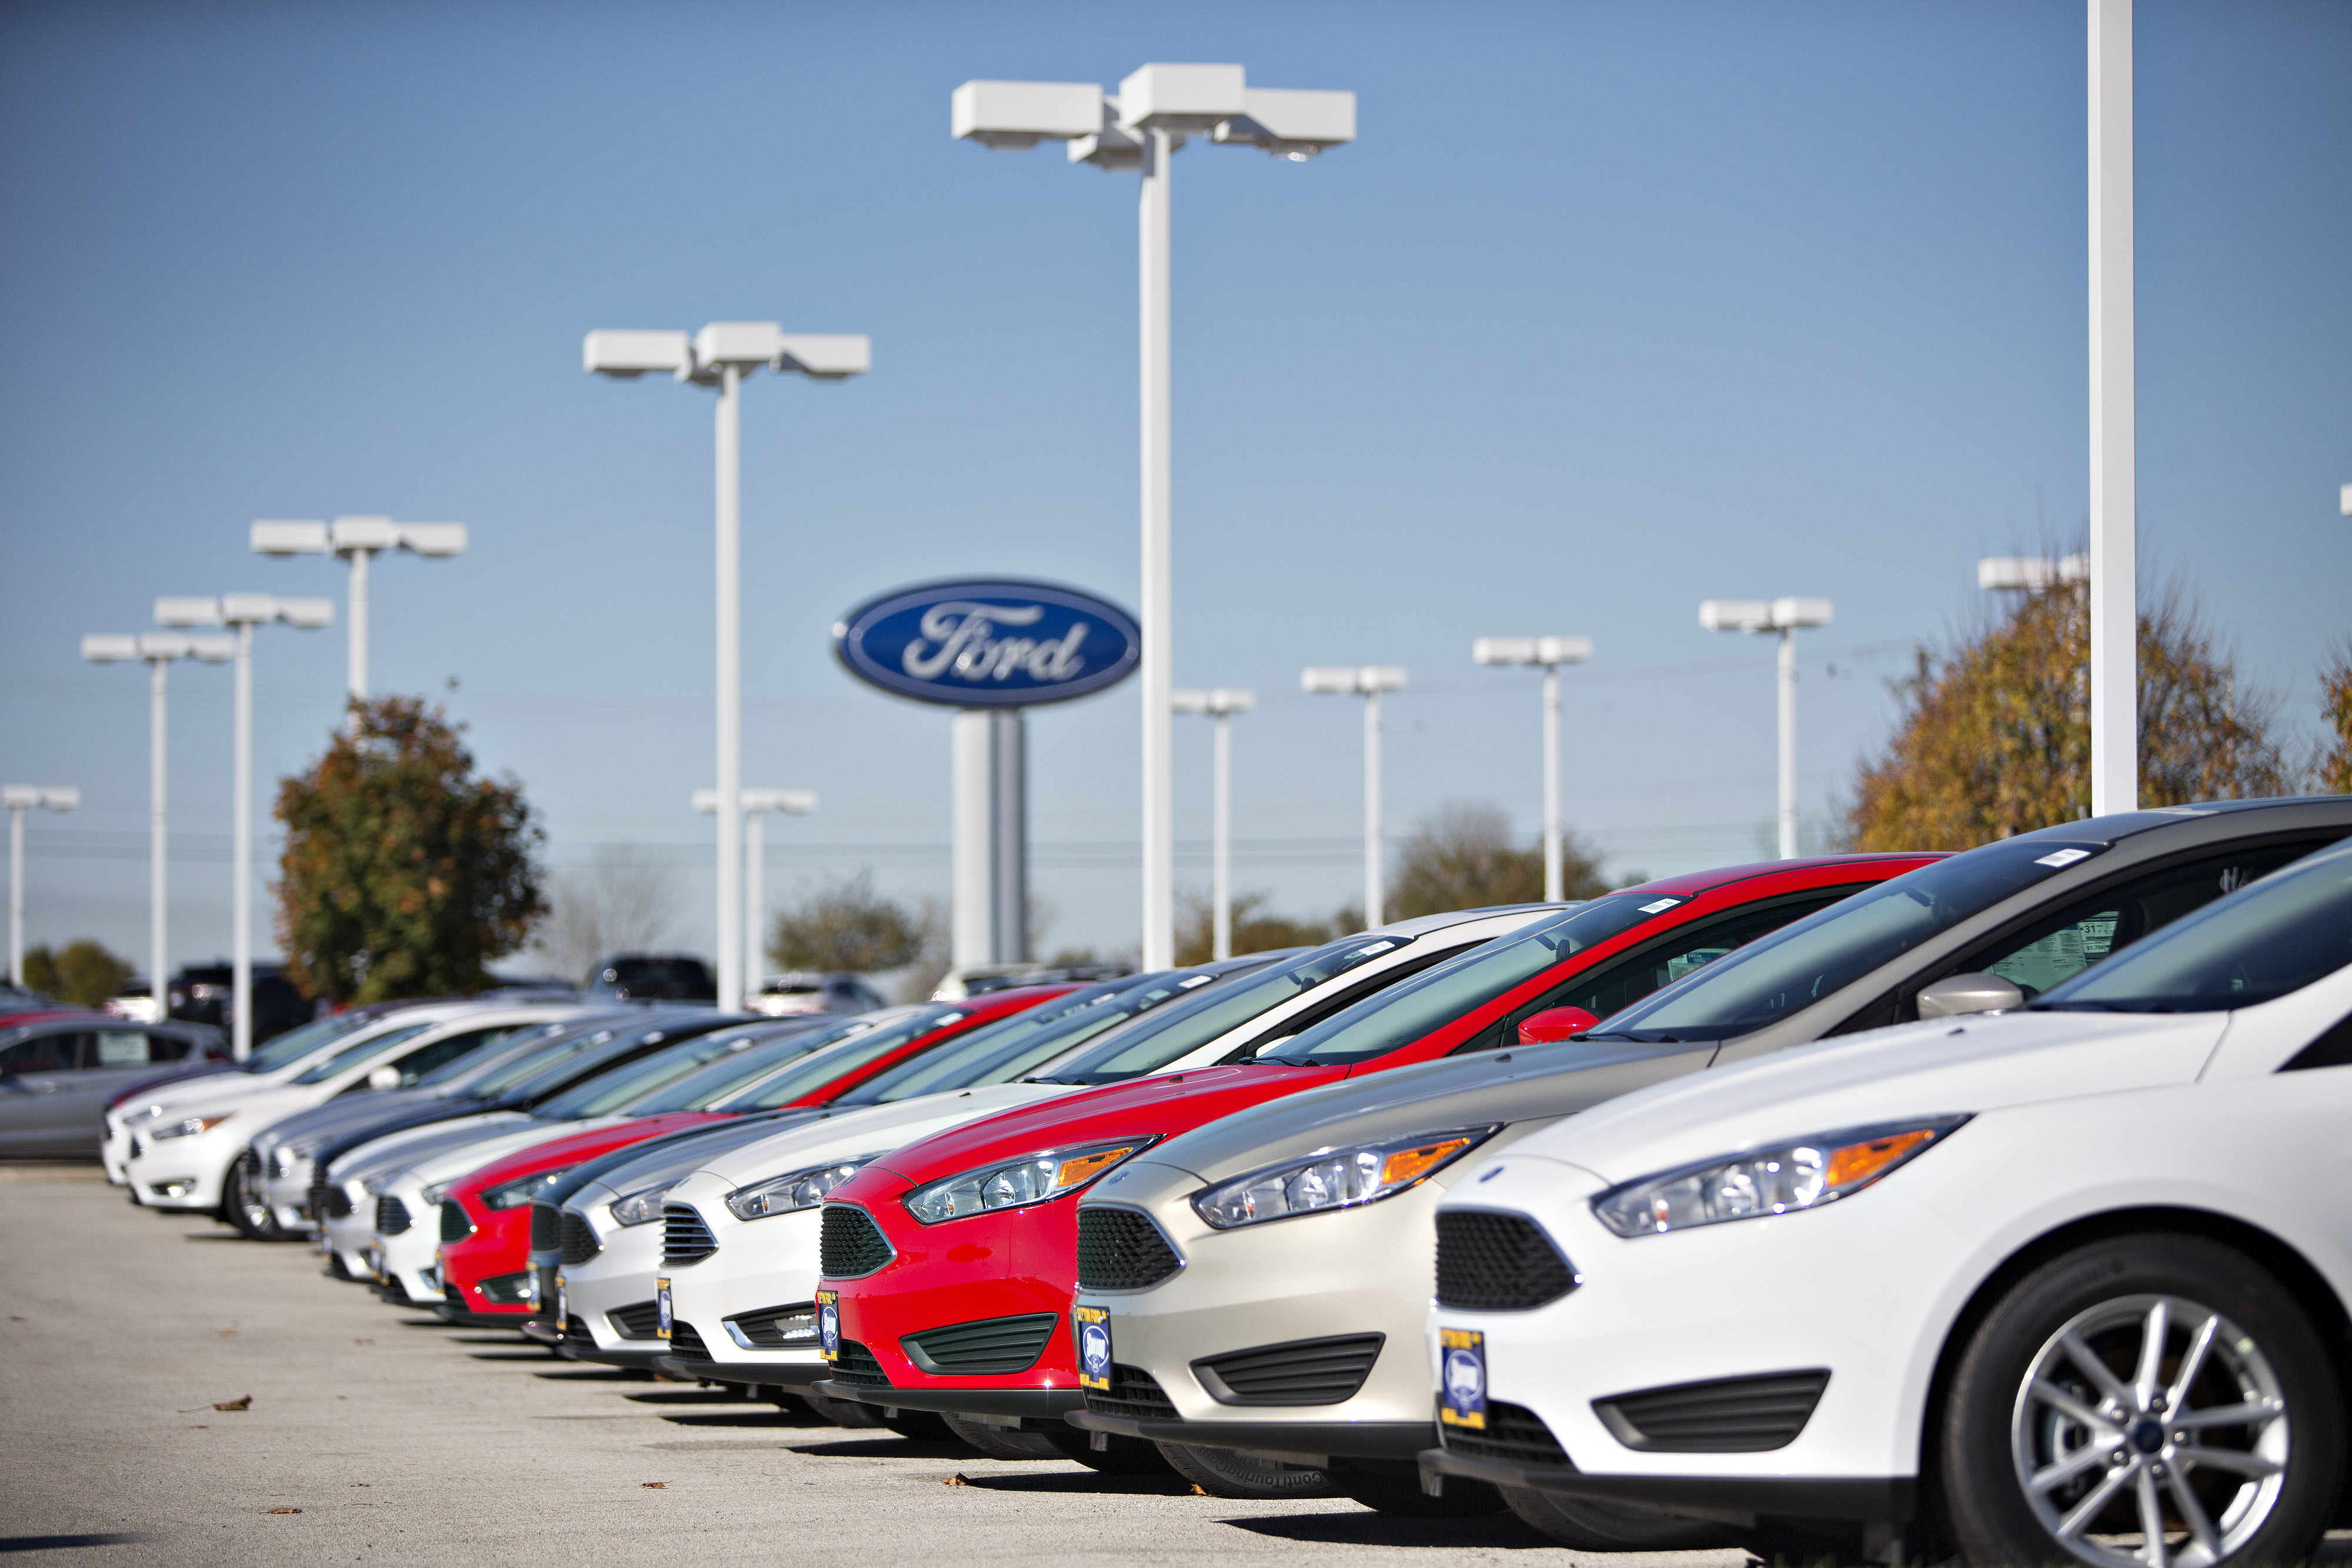 A row of new Ford Focus vehicles sit on display at Sutton Ford in Matteson, Illinois, U.S., on Friday, Oct. 30, 2015. Photographer:  Daniel Acker/Bloomberg